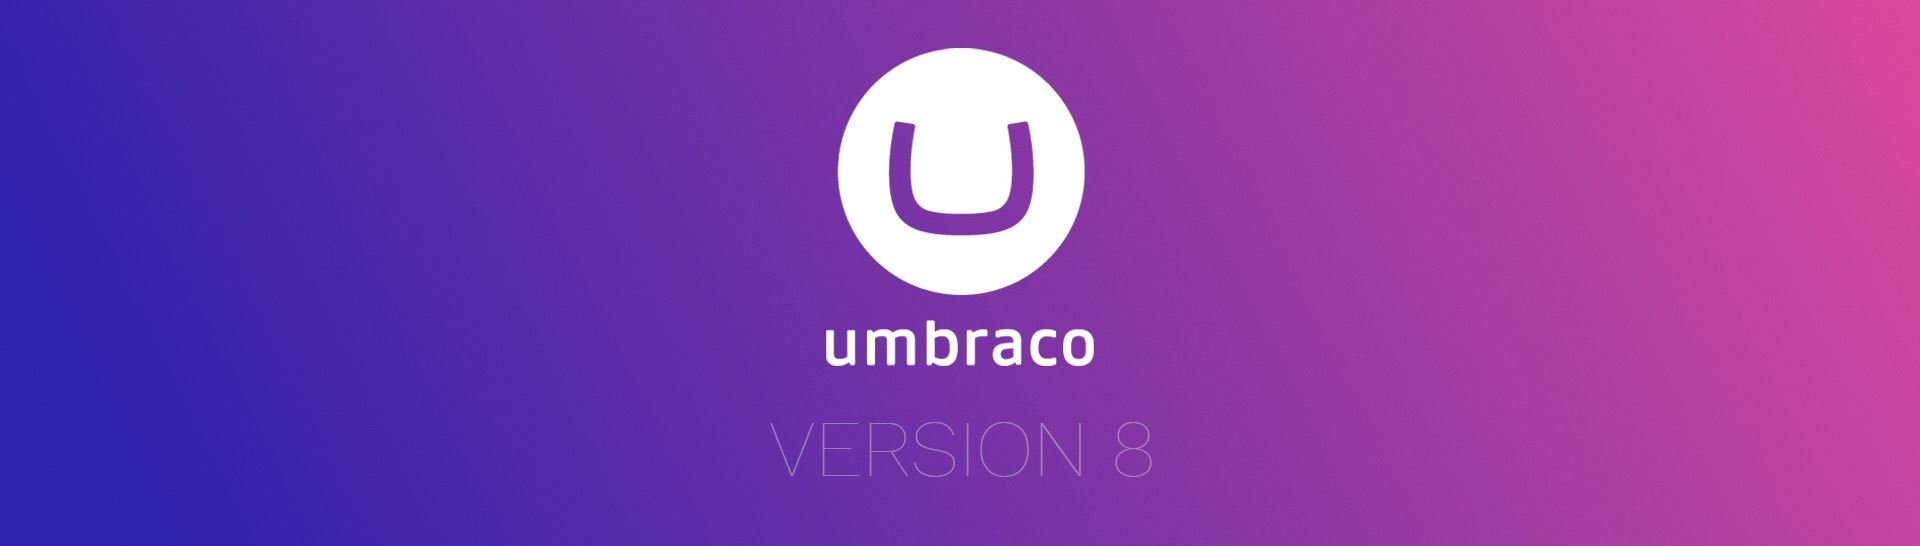 umbraco 8 whats new and should i upgrade